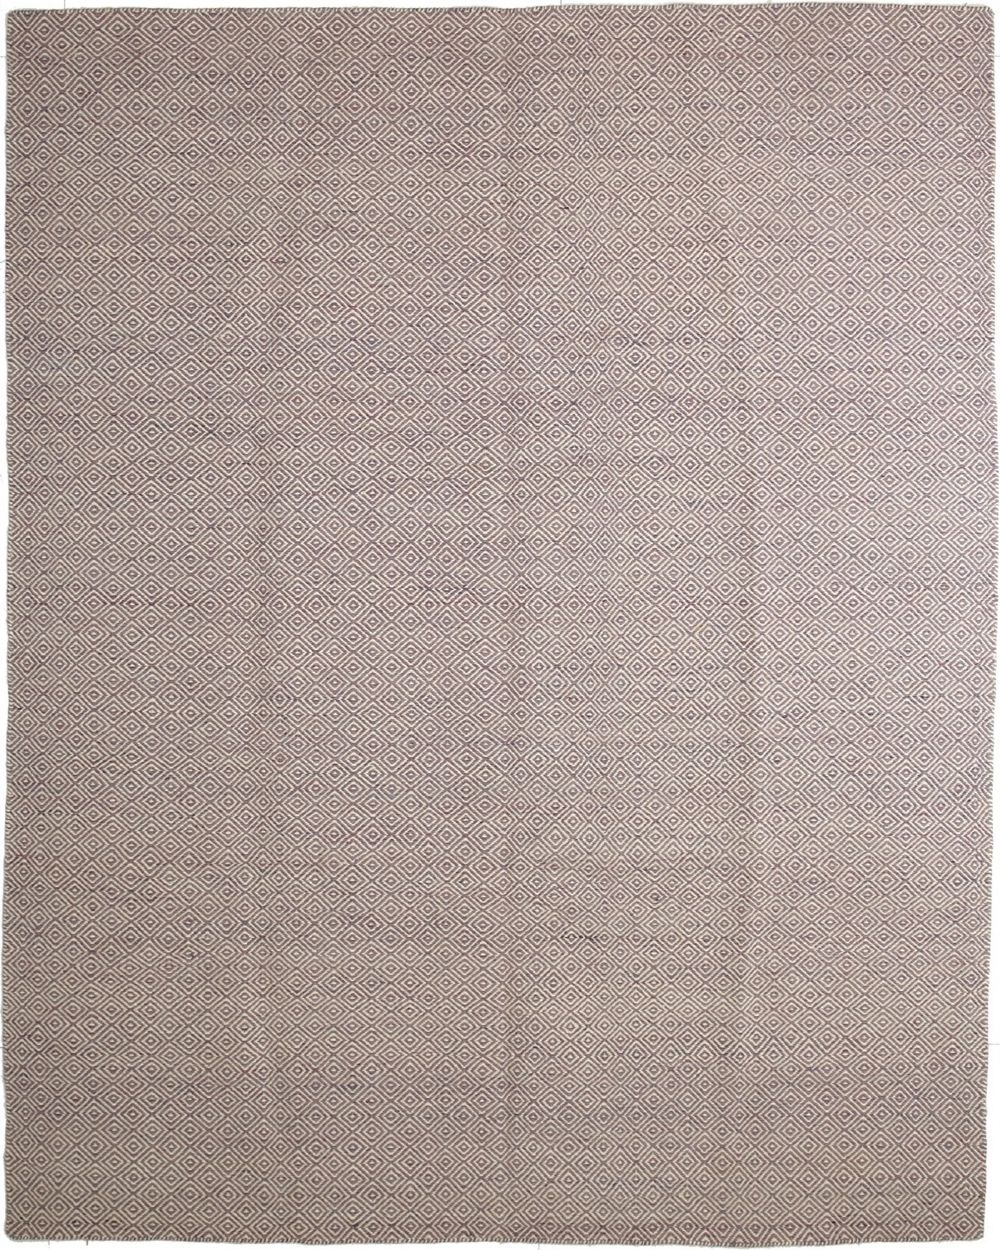 darya flat weave traditional area rug collection